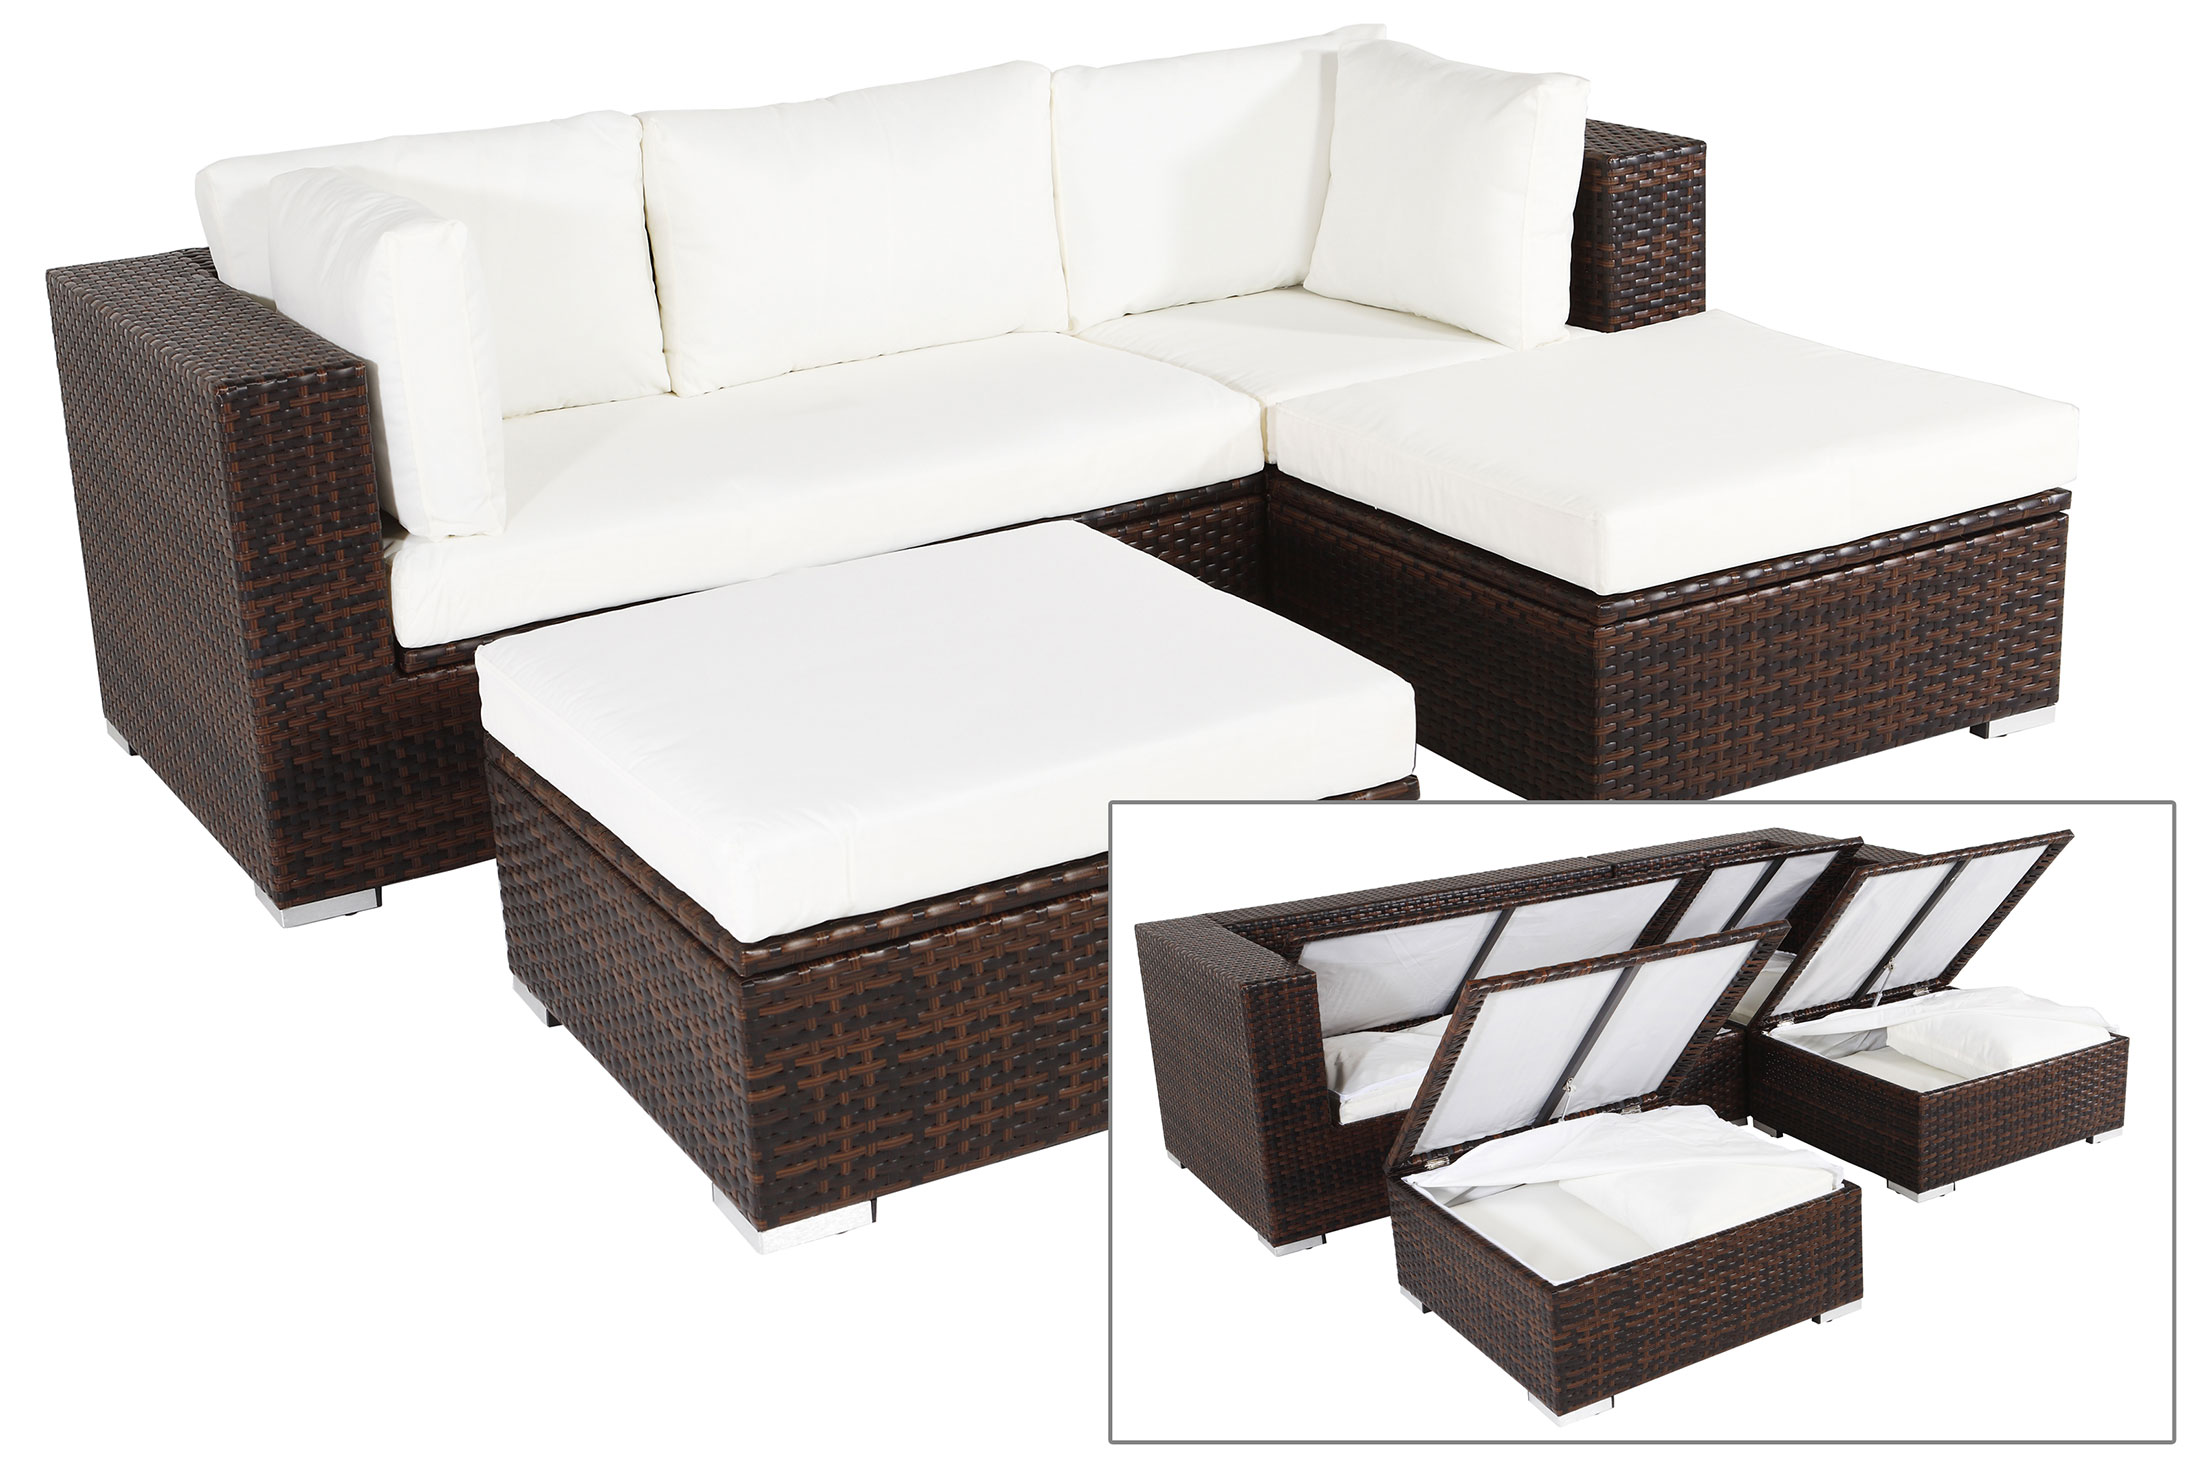 outflexx gartenm belset aus polyrattan mit boxfunktion. Black Bedroom Furniture Sets. Home Design Ideas